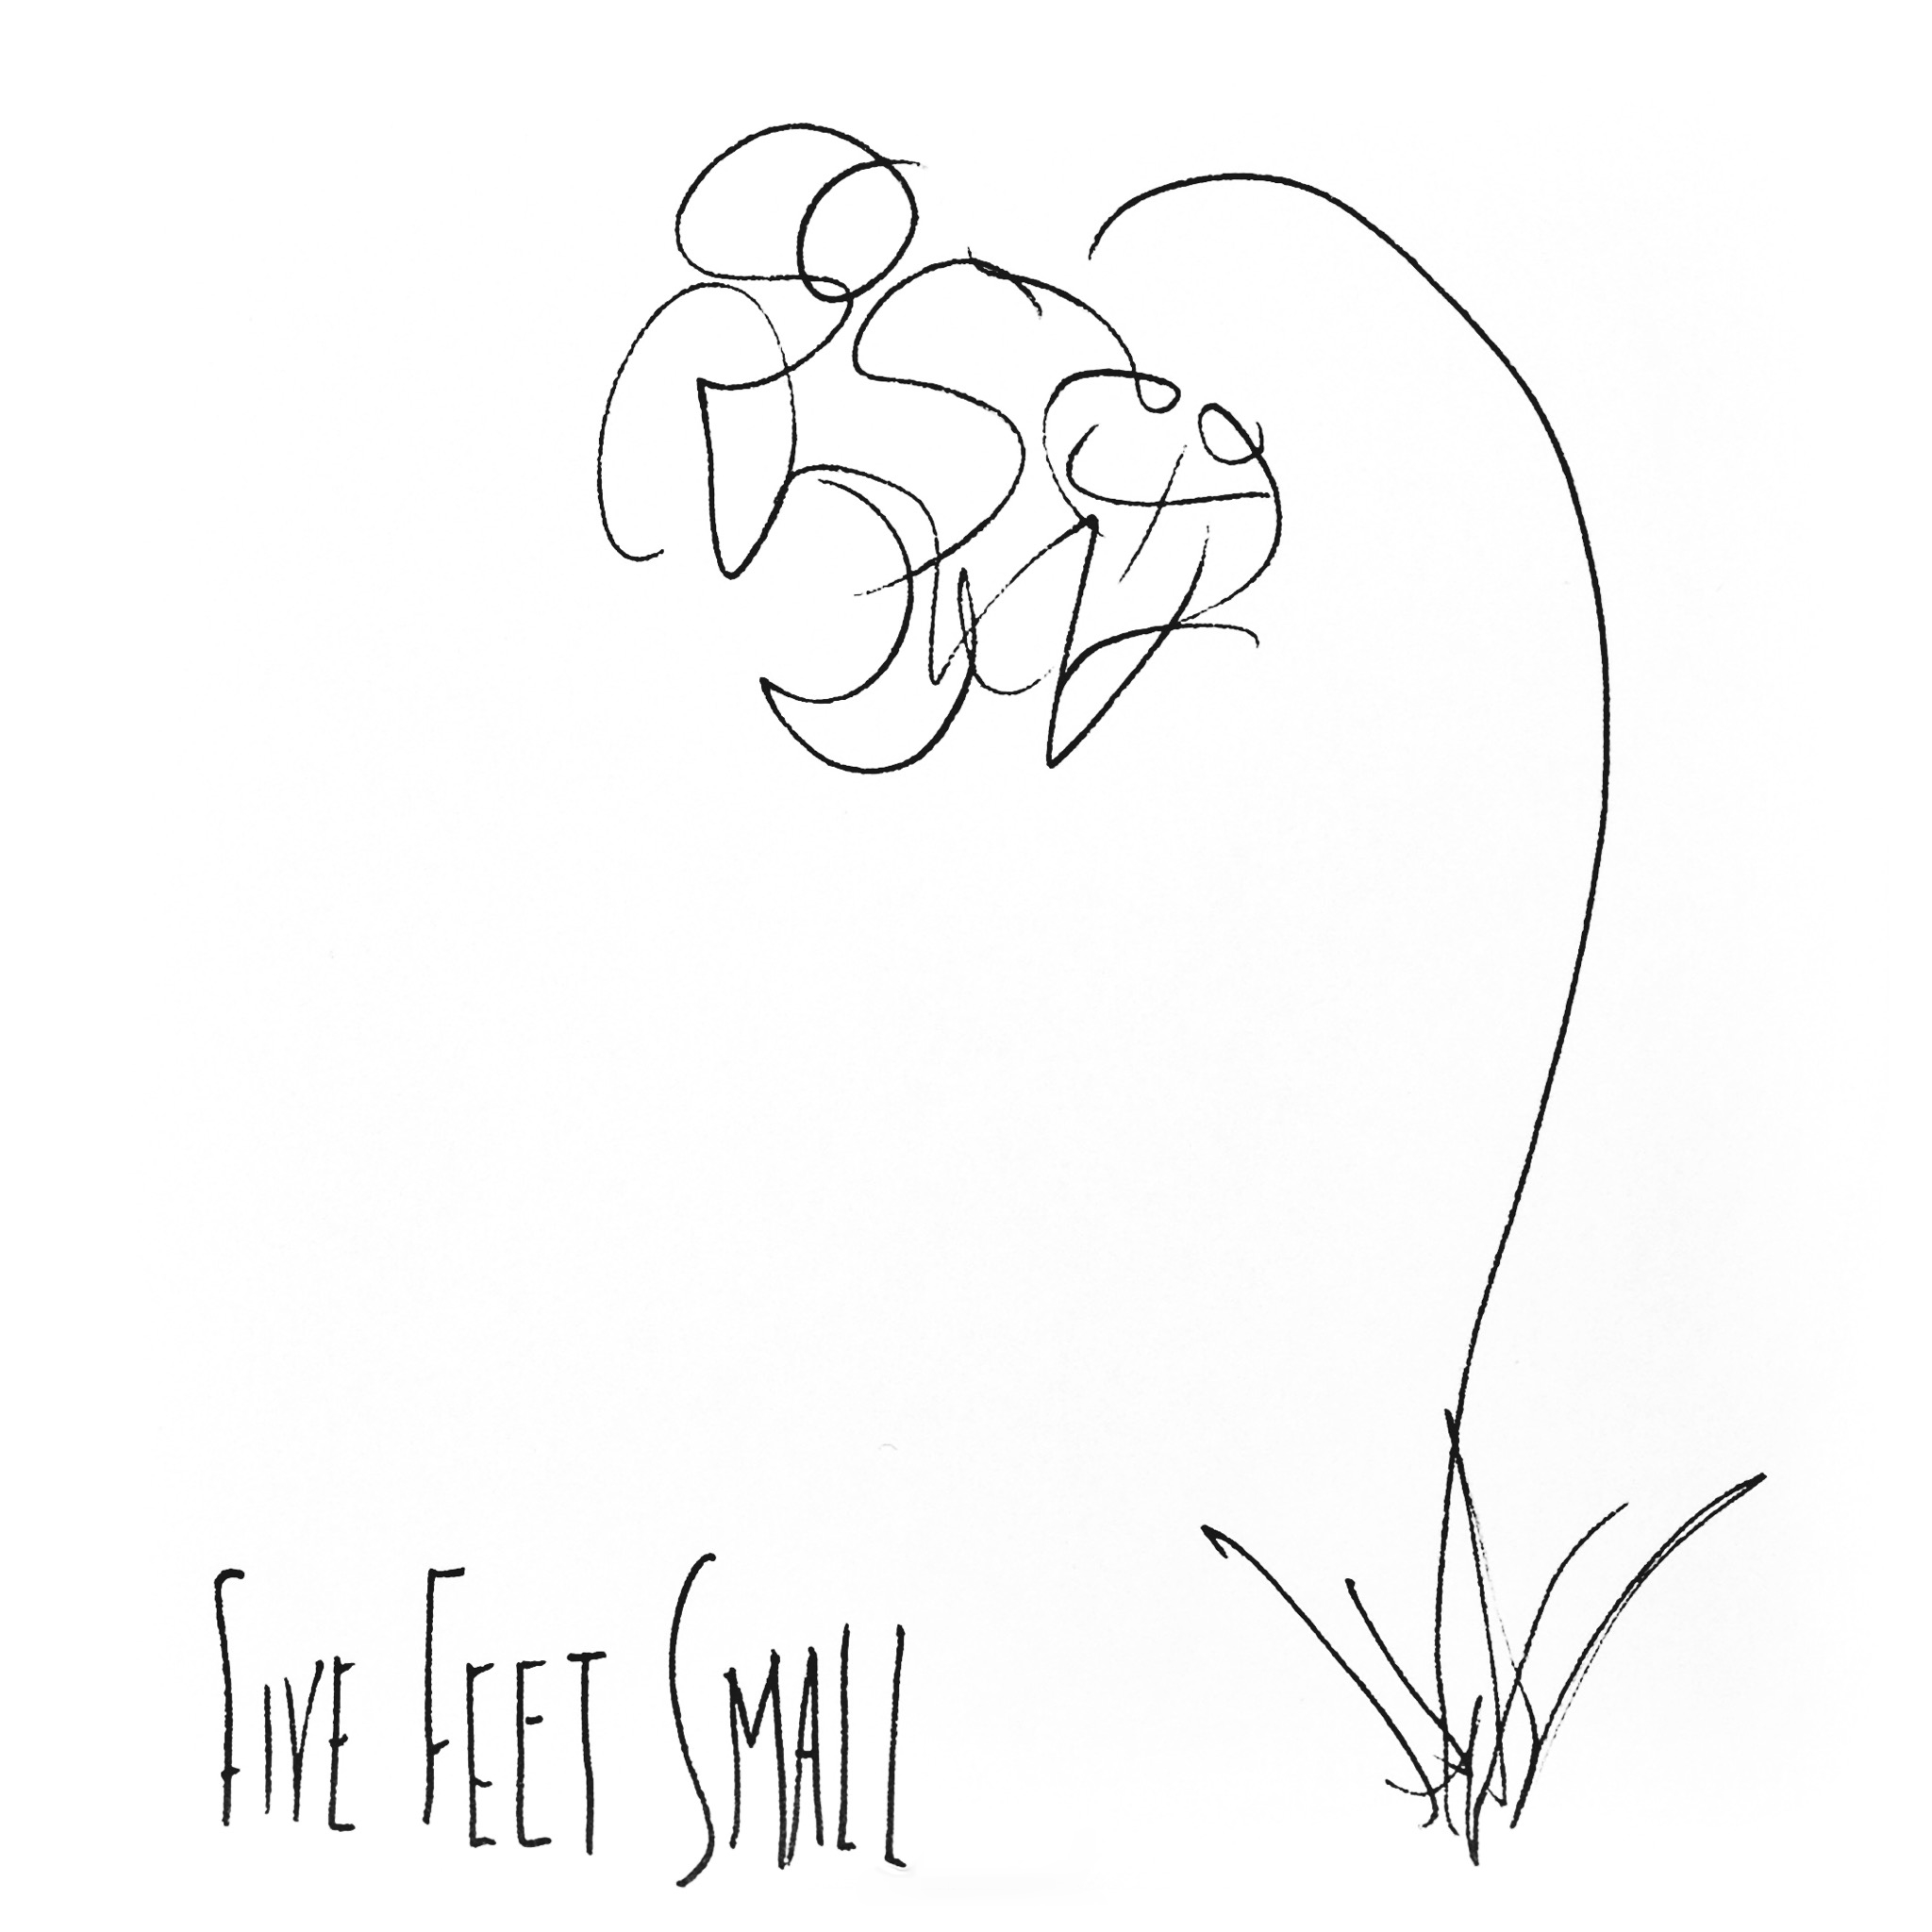 FIVE FEET SMALL CD.jpg